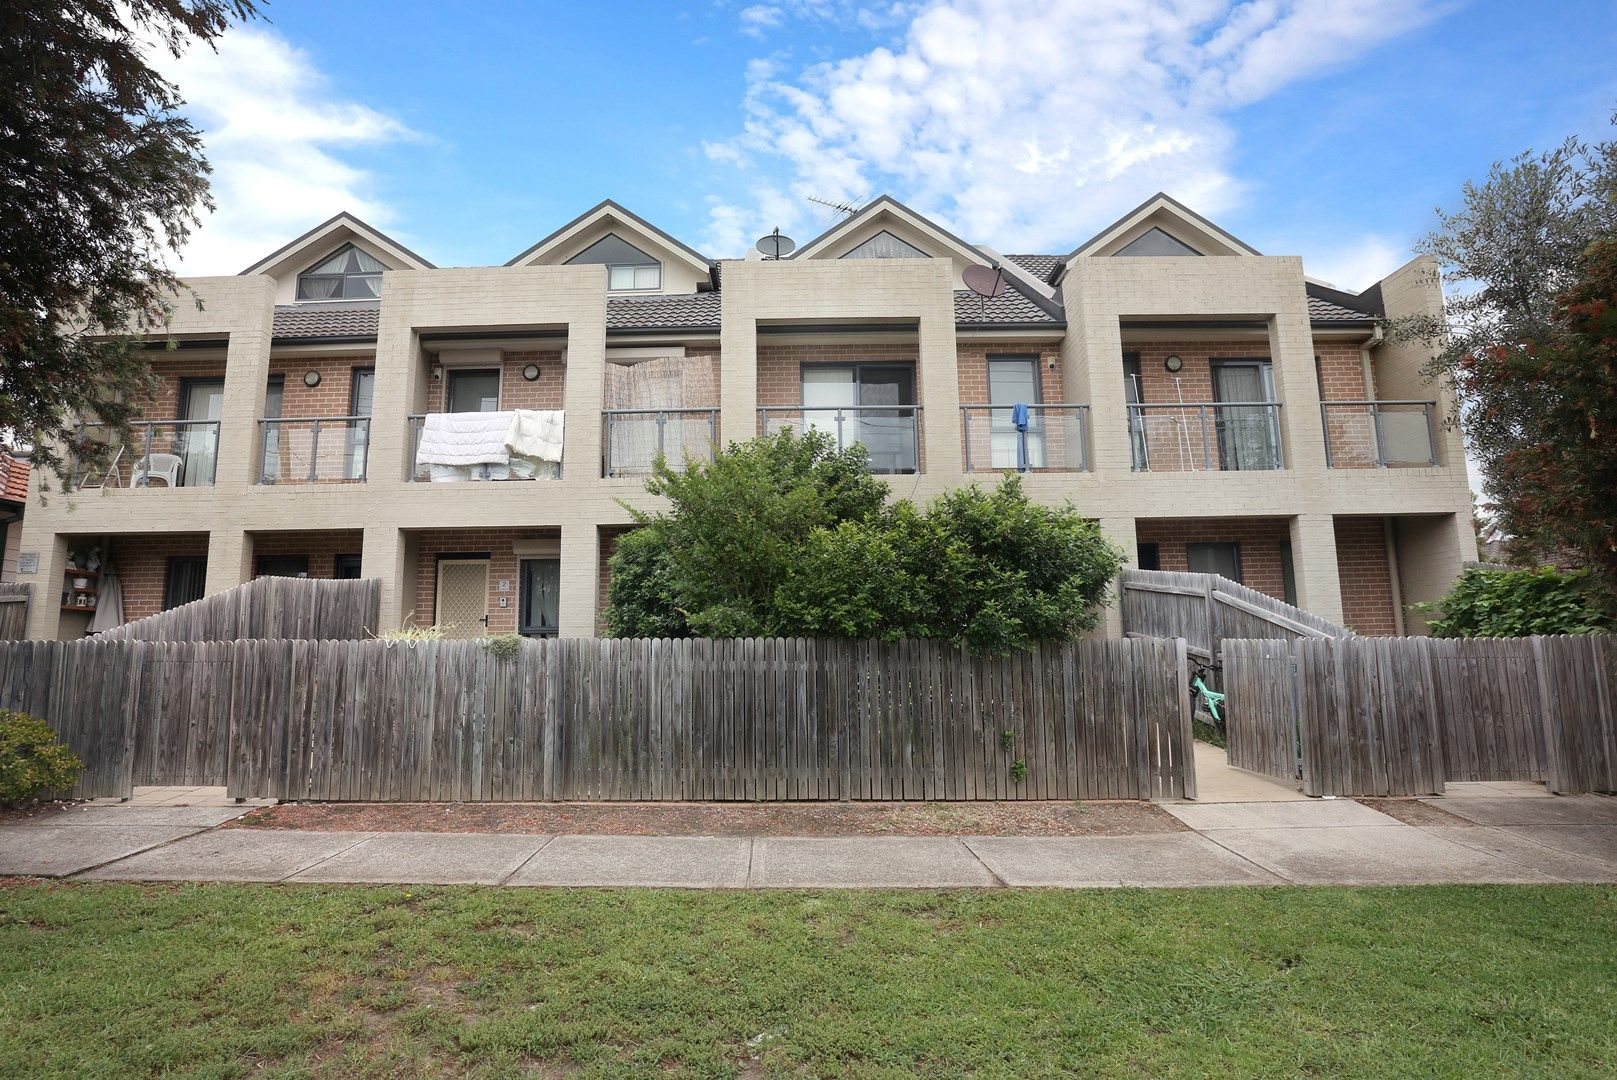 11/24-26 Markey St, Guildford NSW 2161, Image 0